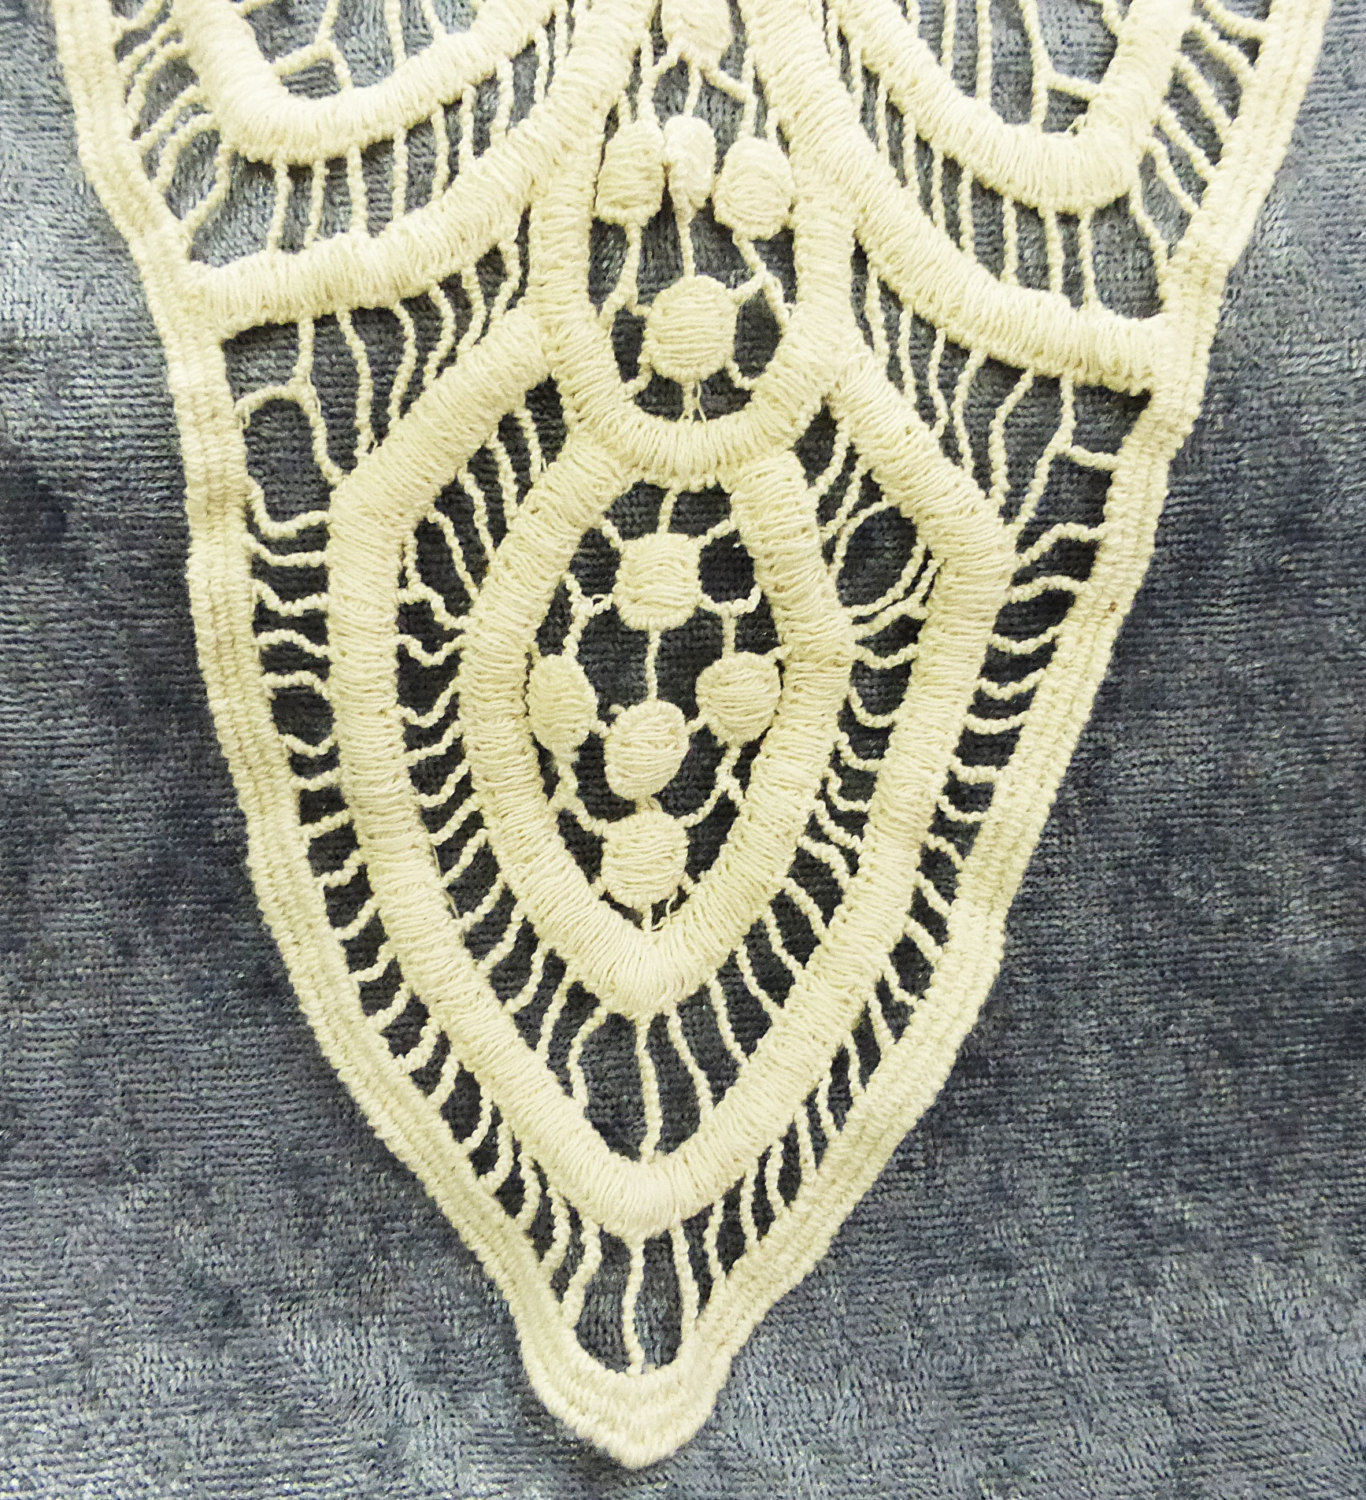 Embroidered natural color cotton back or front patch applique for dress or shirt